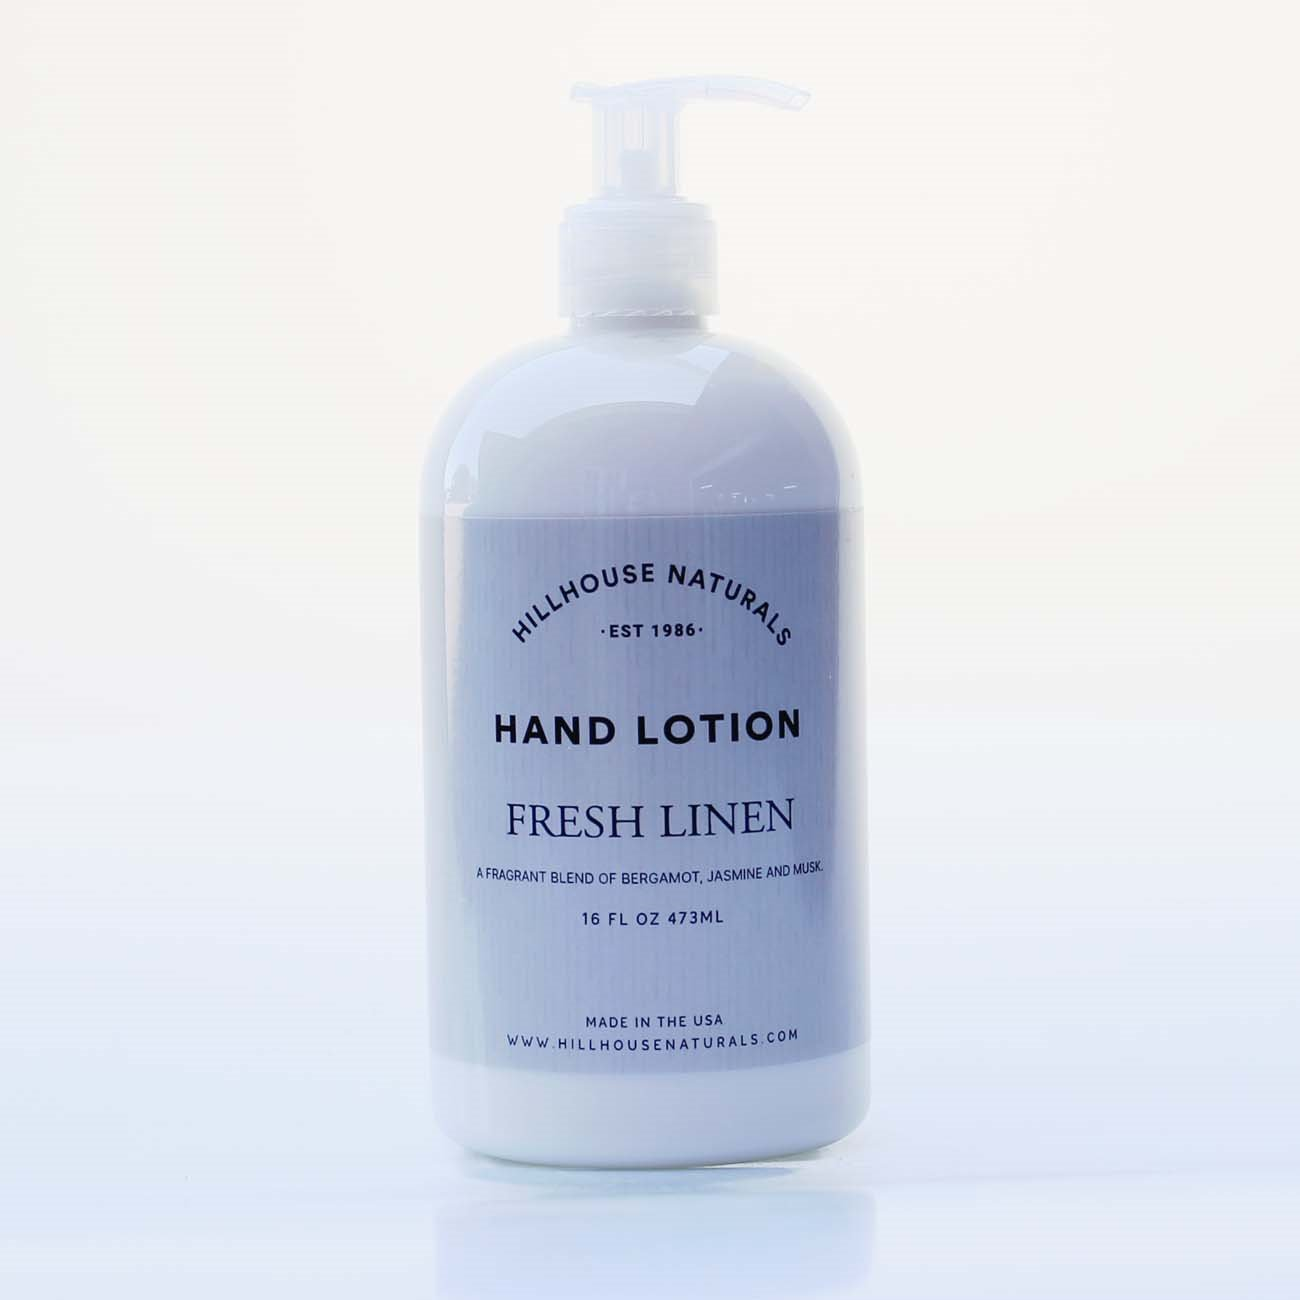 Fresh Linen Hand Lotion 8.25 oz by Hillhouse Naturals